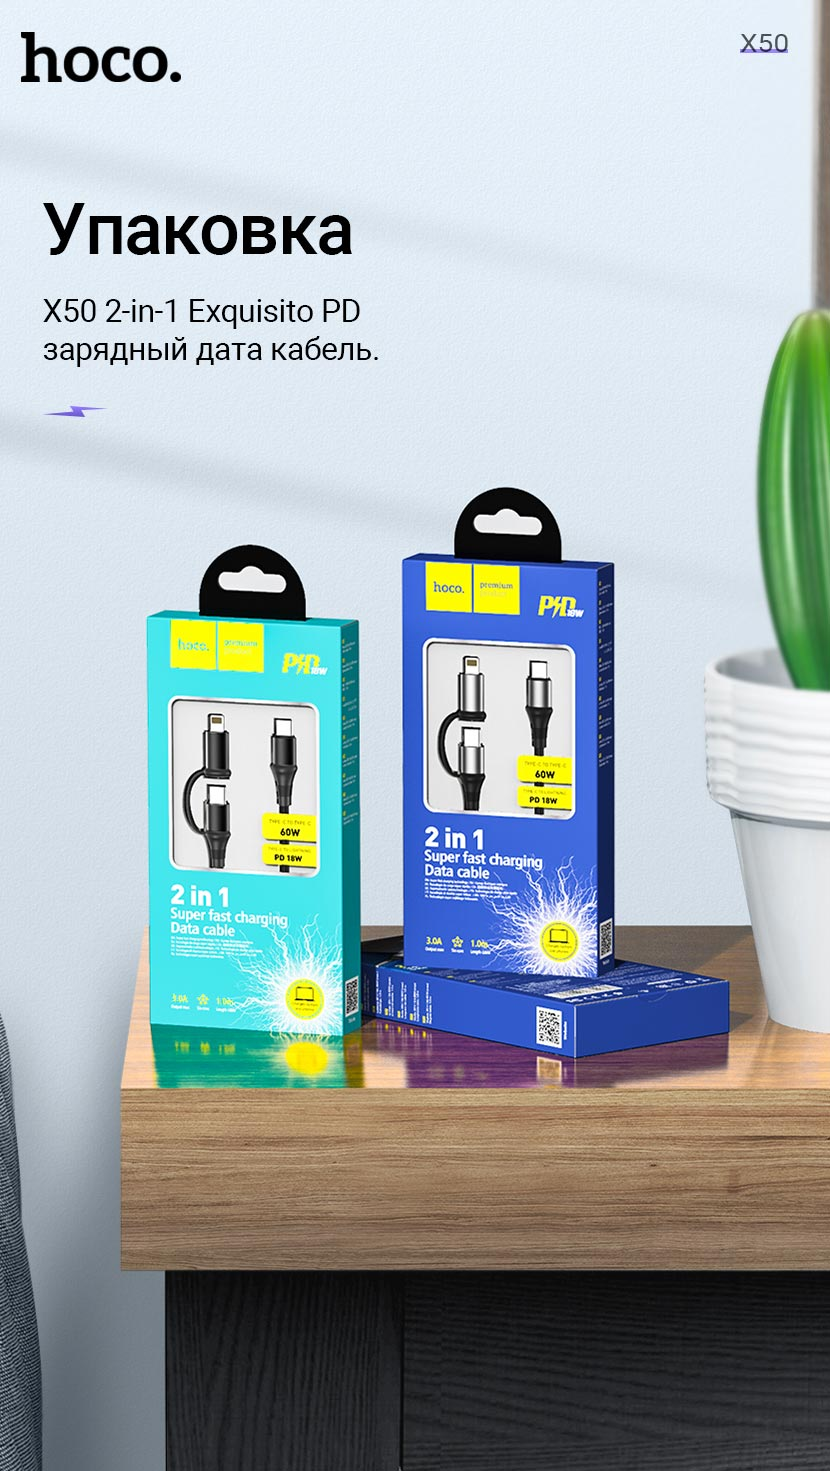 hoco news x50 exquisito charging data cable 2in1 package ru